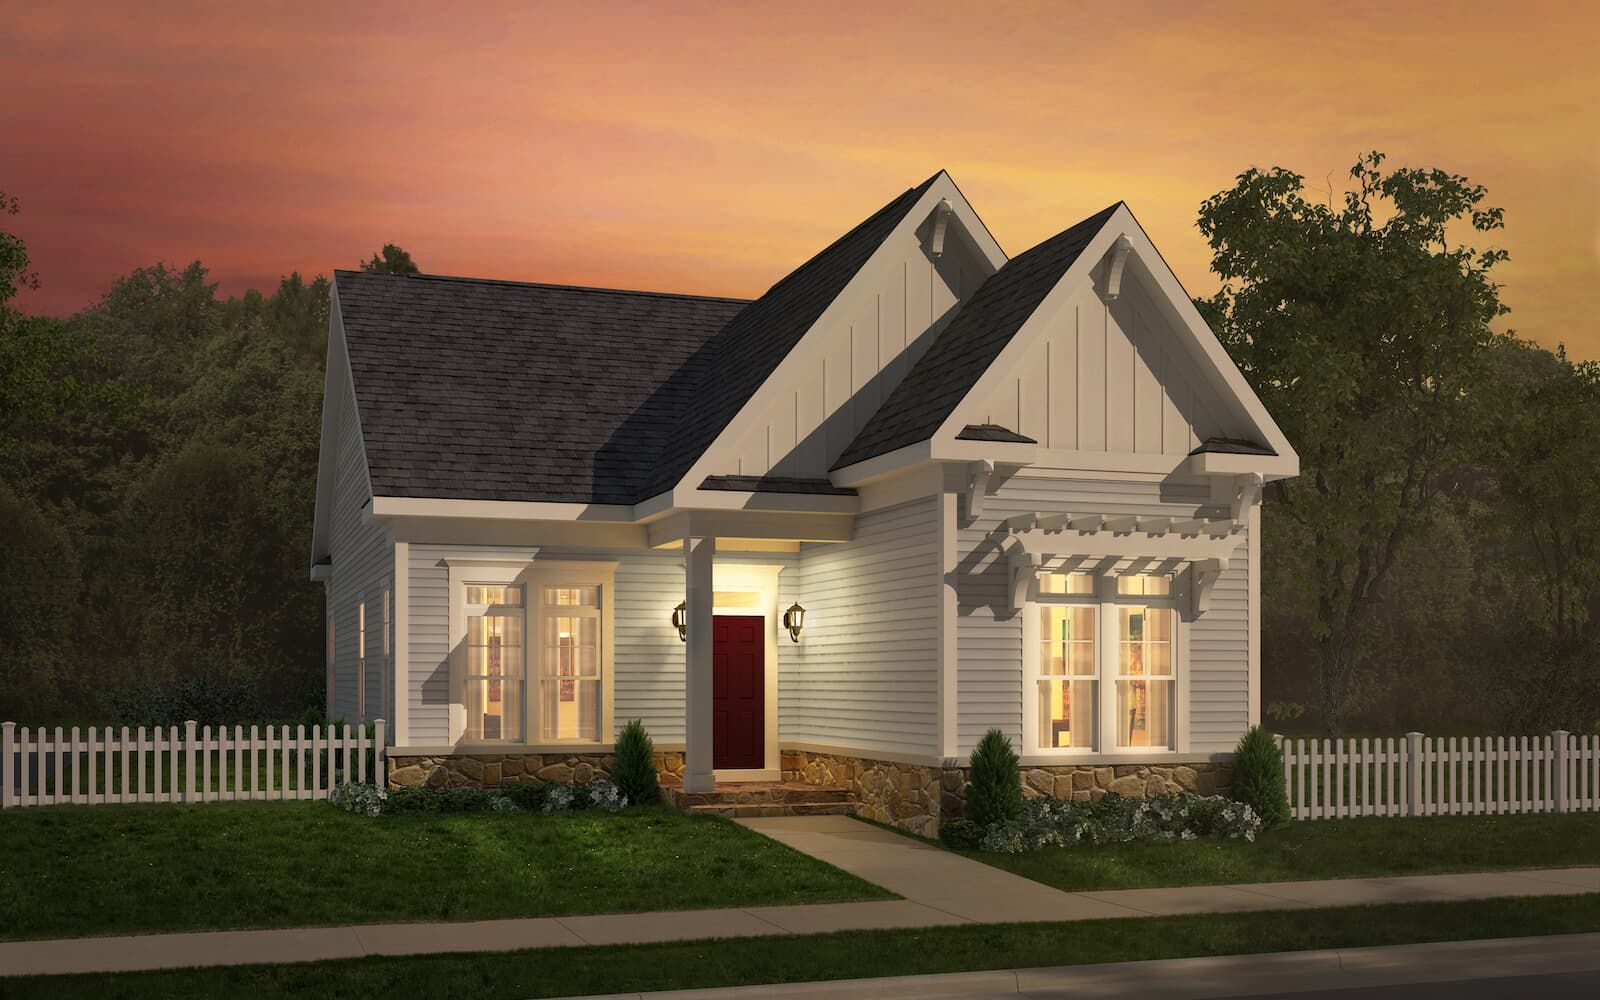 Exterior:Elevation 1 of the Bridgeport II a home design at Easton Village by Brookfield Residential